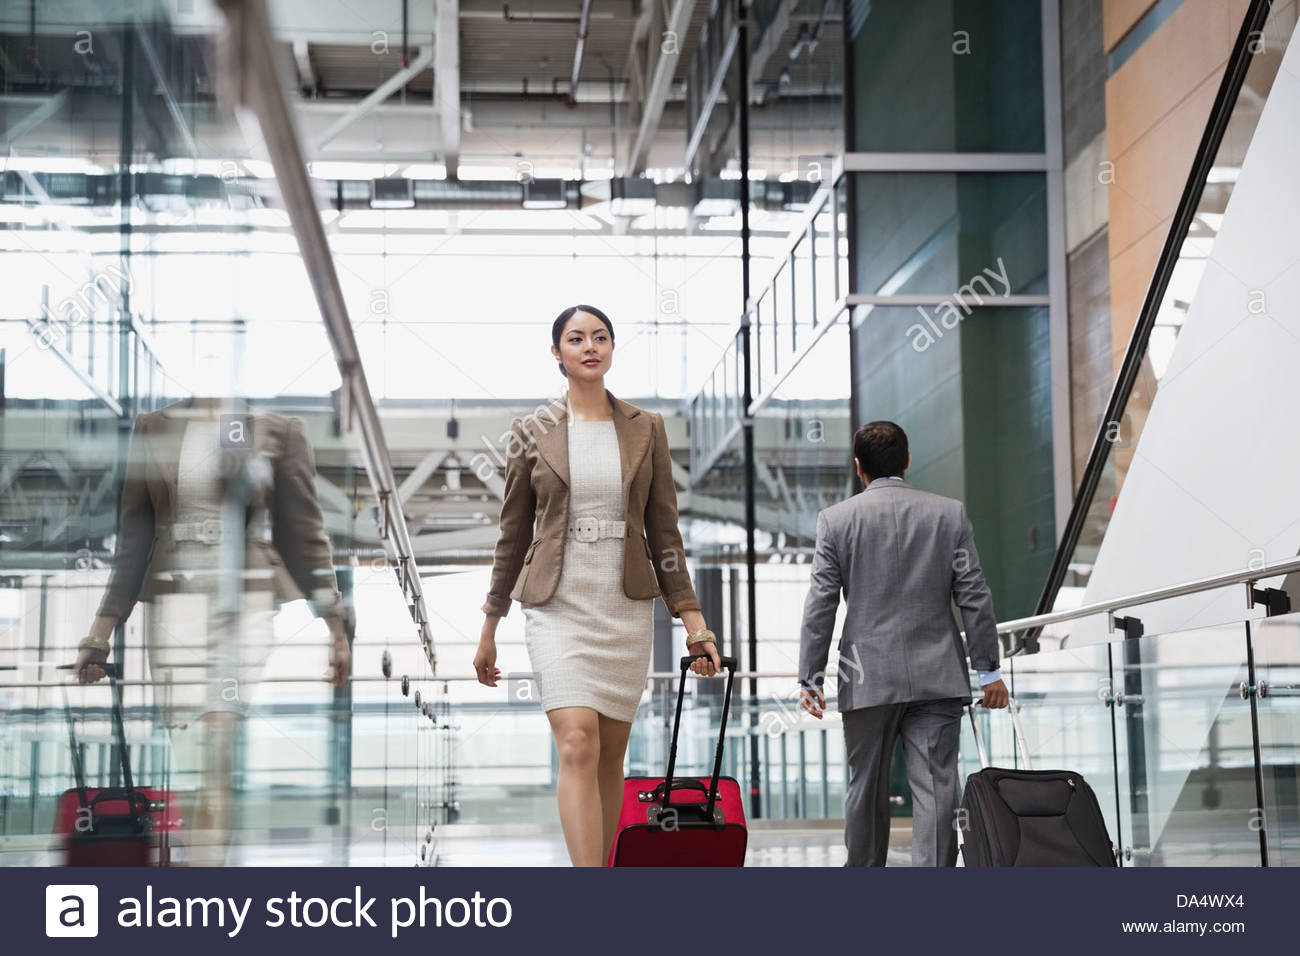 Businesswoman with suitcase walking at airport - Stock Image